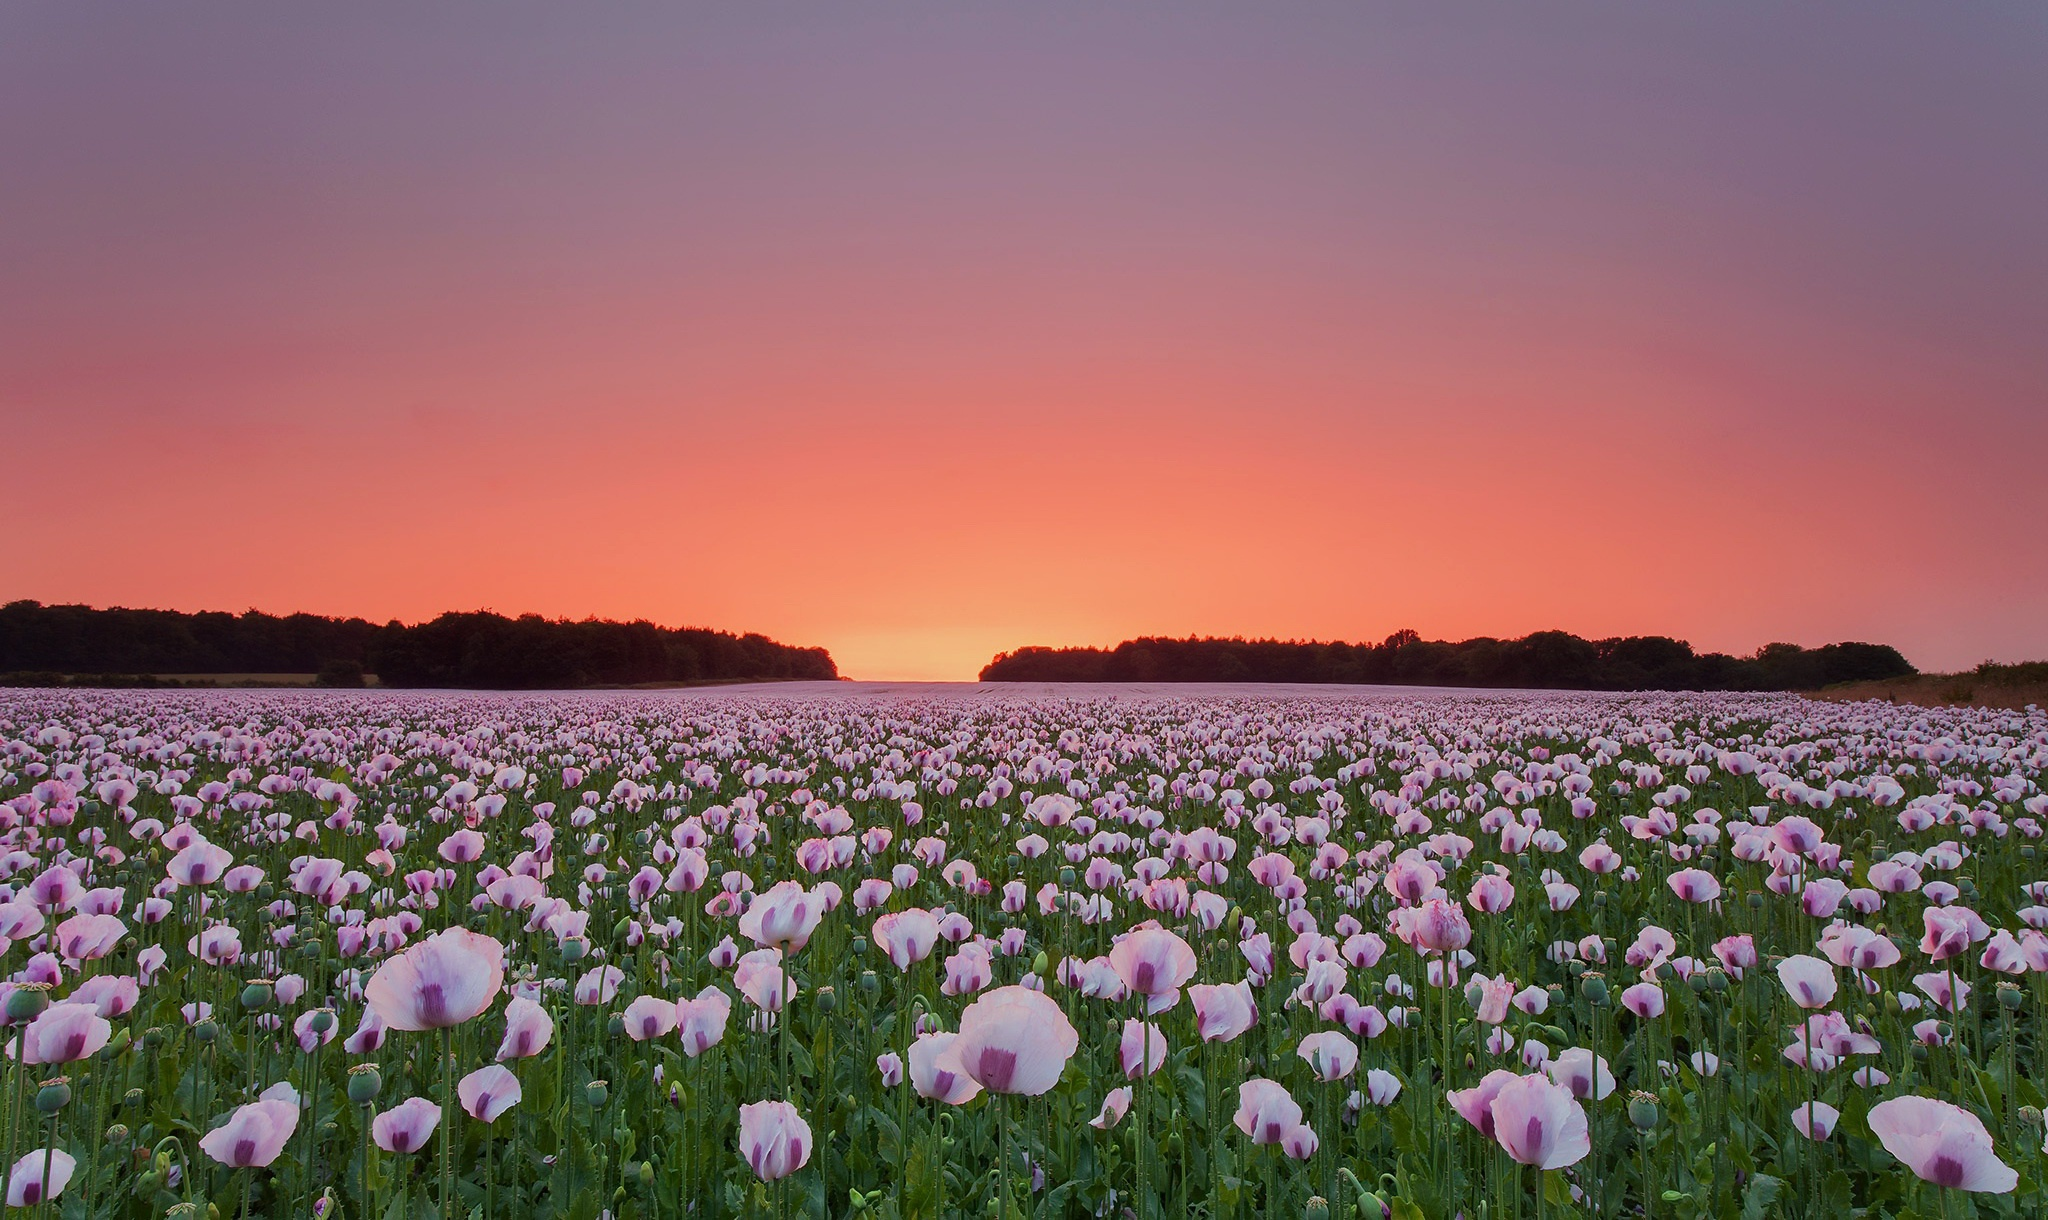 1920x1080 Poppy Flowers Field Laptop Full Hd 1080p Hd 4k Wallpapers Images Backgrounds Photos And Pictures